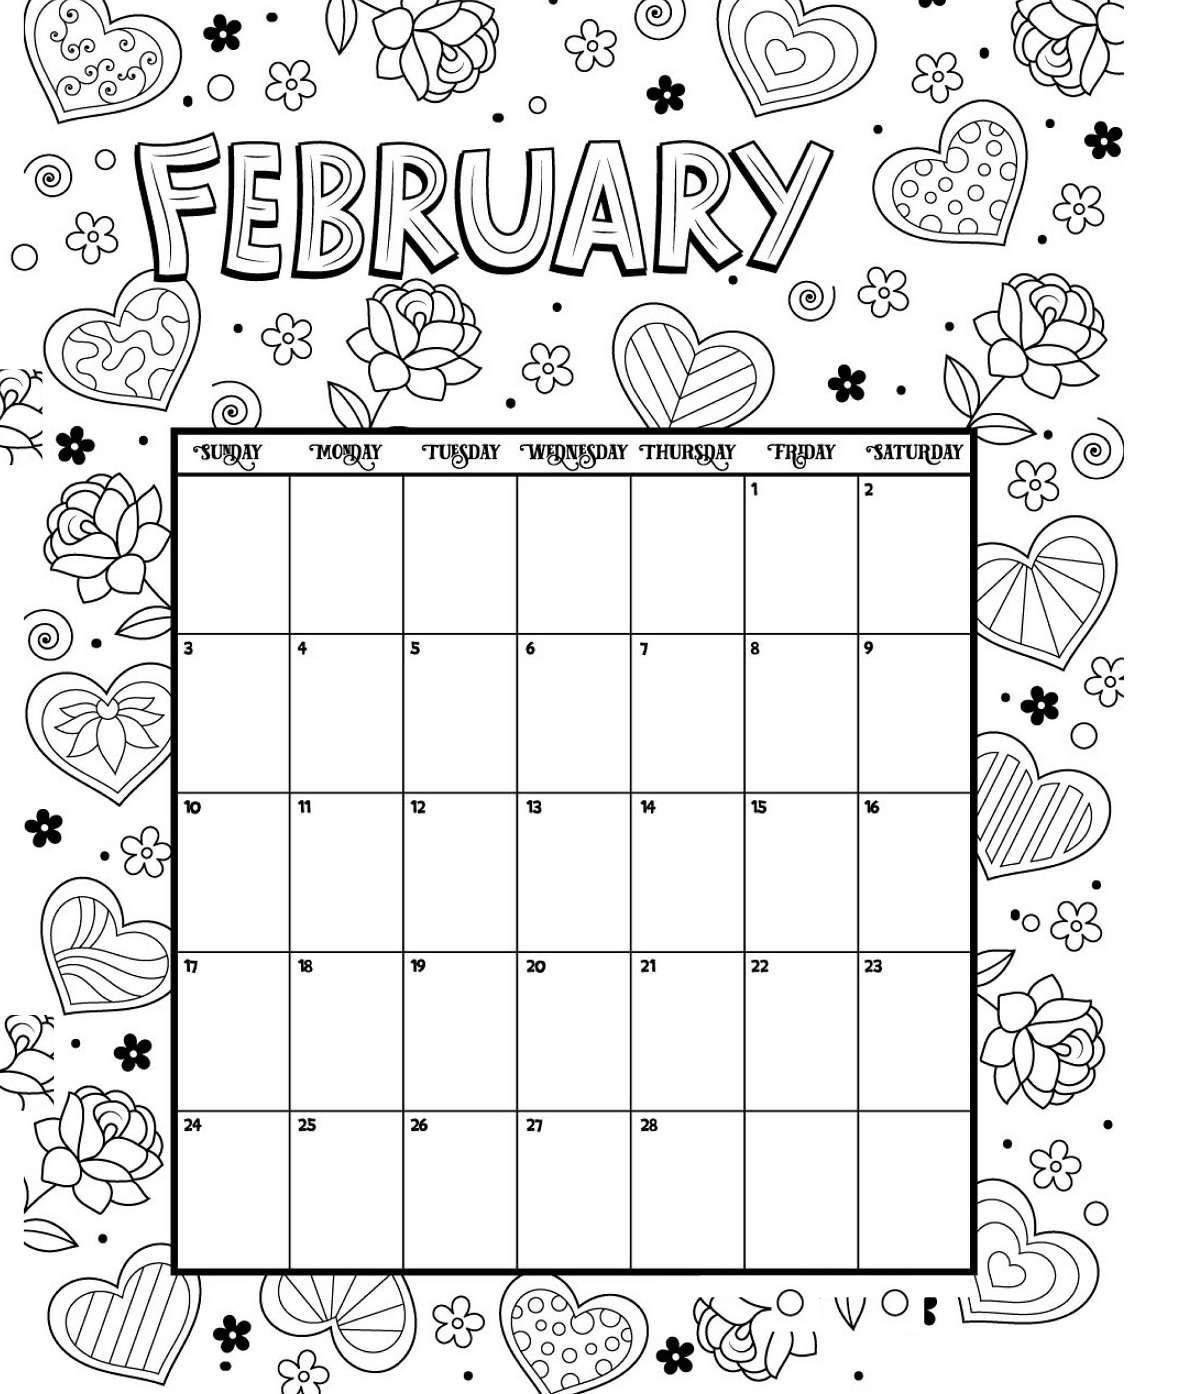 February Printable Coloring Calendar 2019 Valentine Coloring